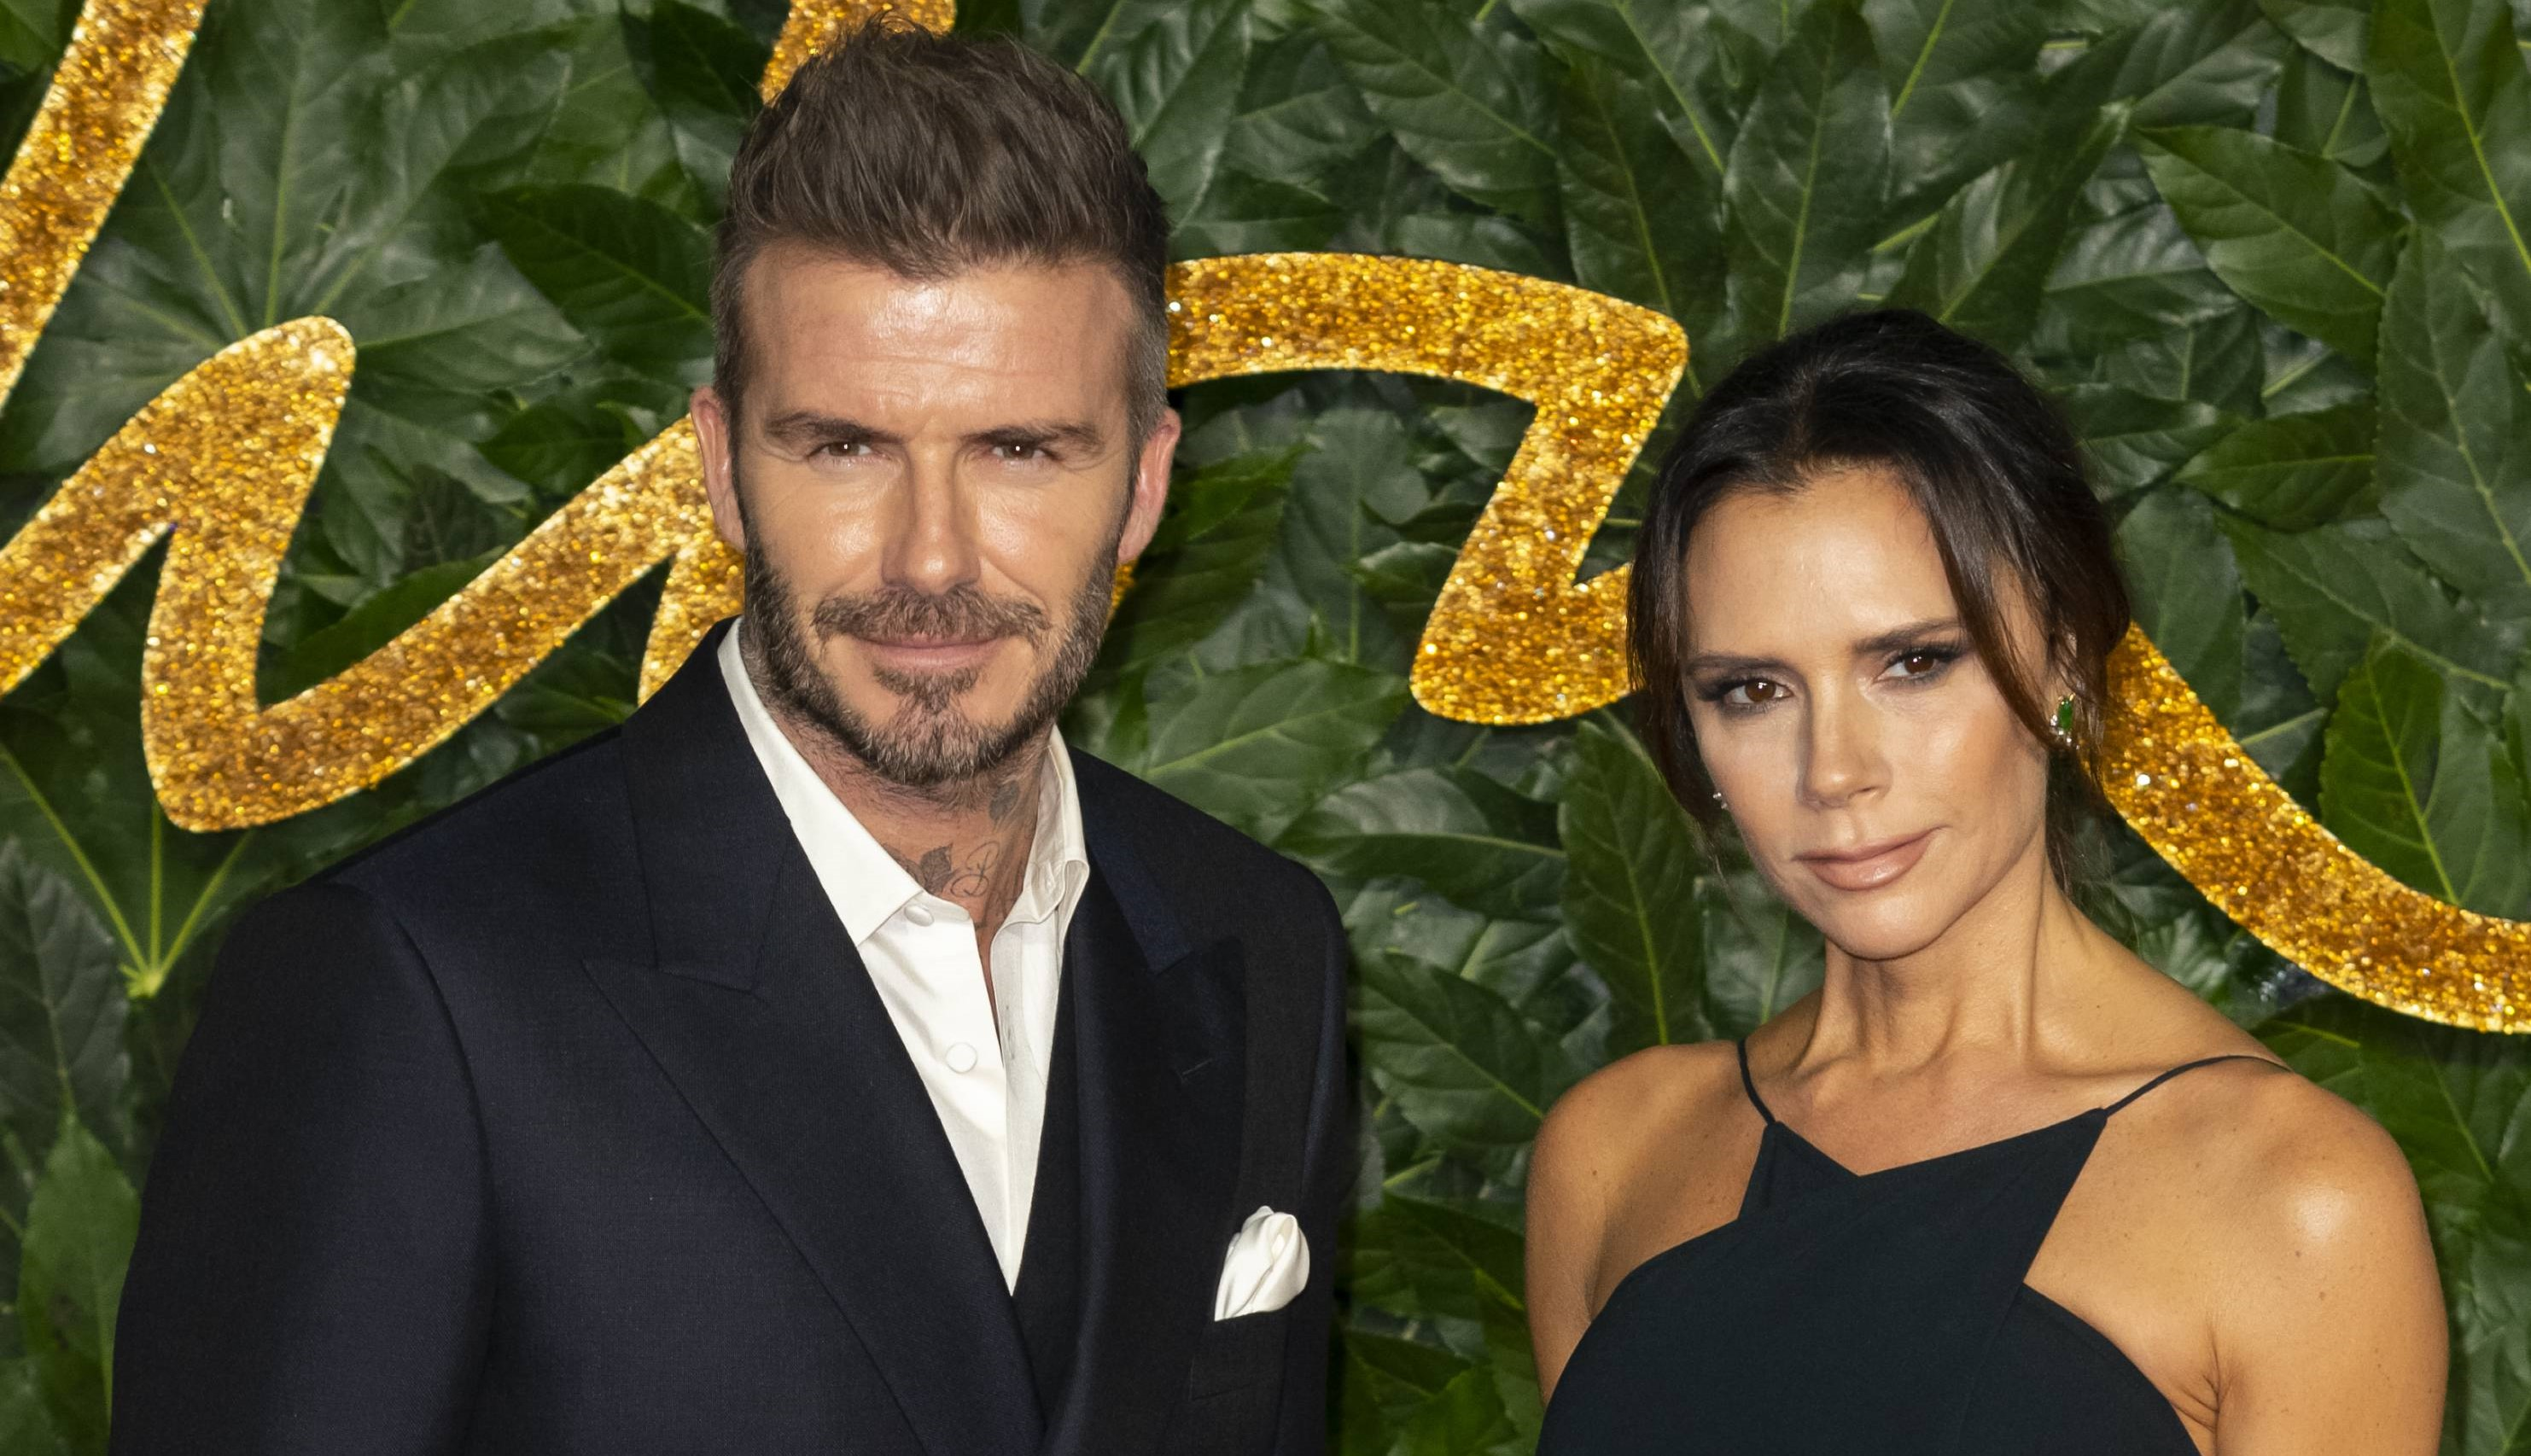 Victoria and David Beckham share loved-up photo at Glastonbury